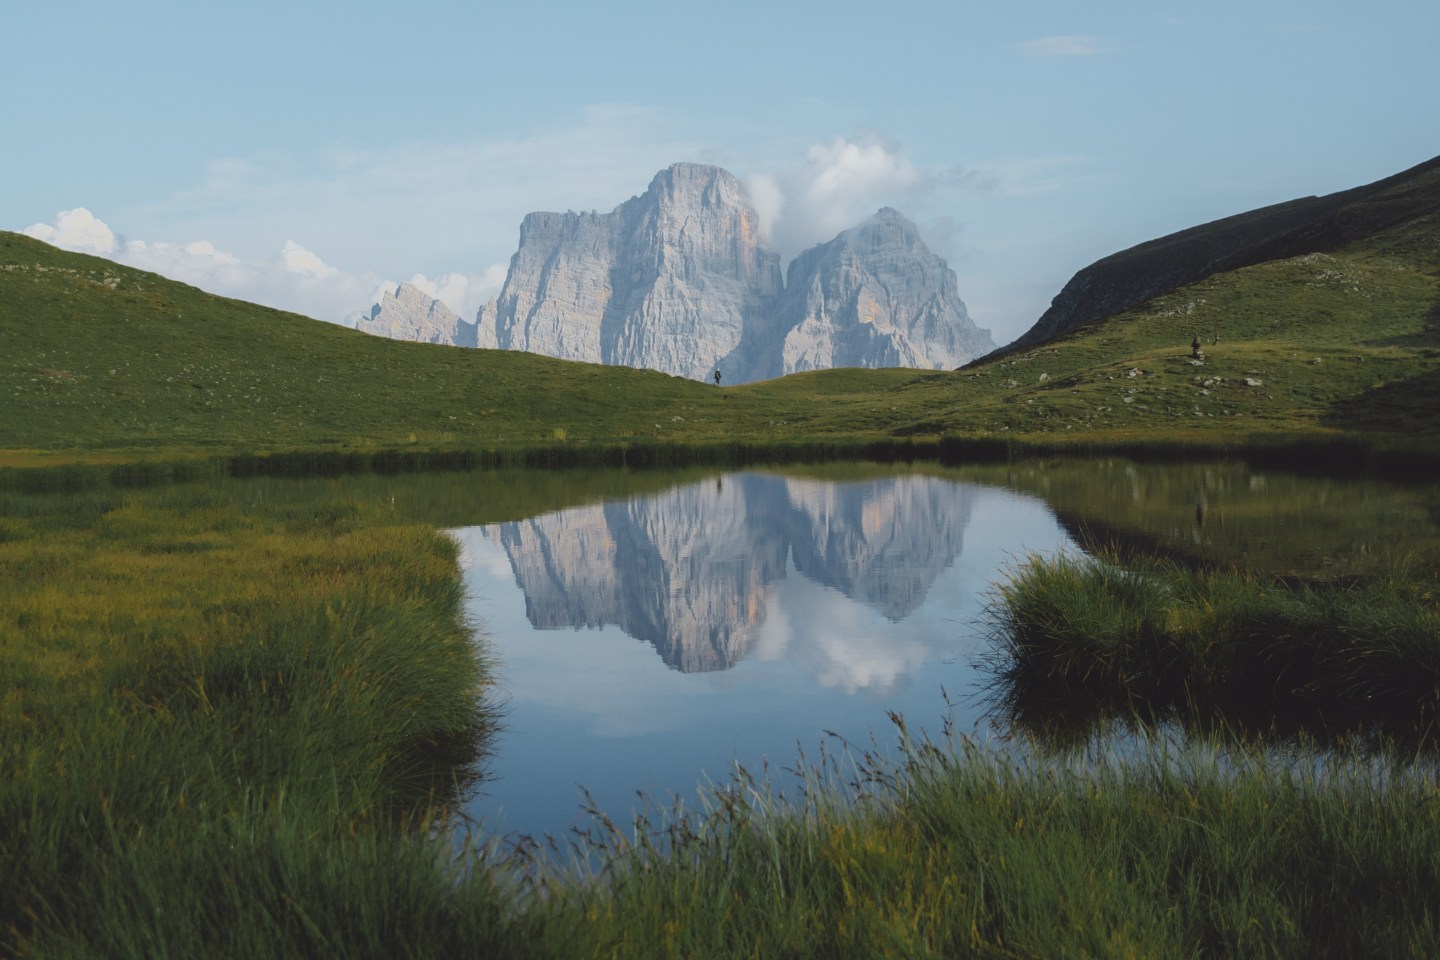 my-7-day-roadtrip-through-the-dolomites-alliemtaylor-12